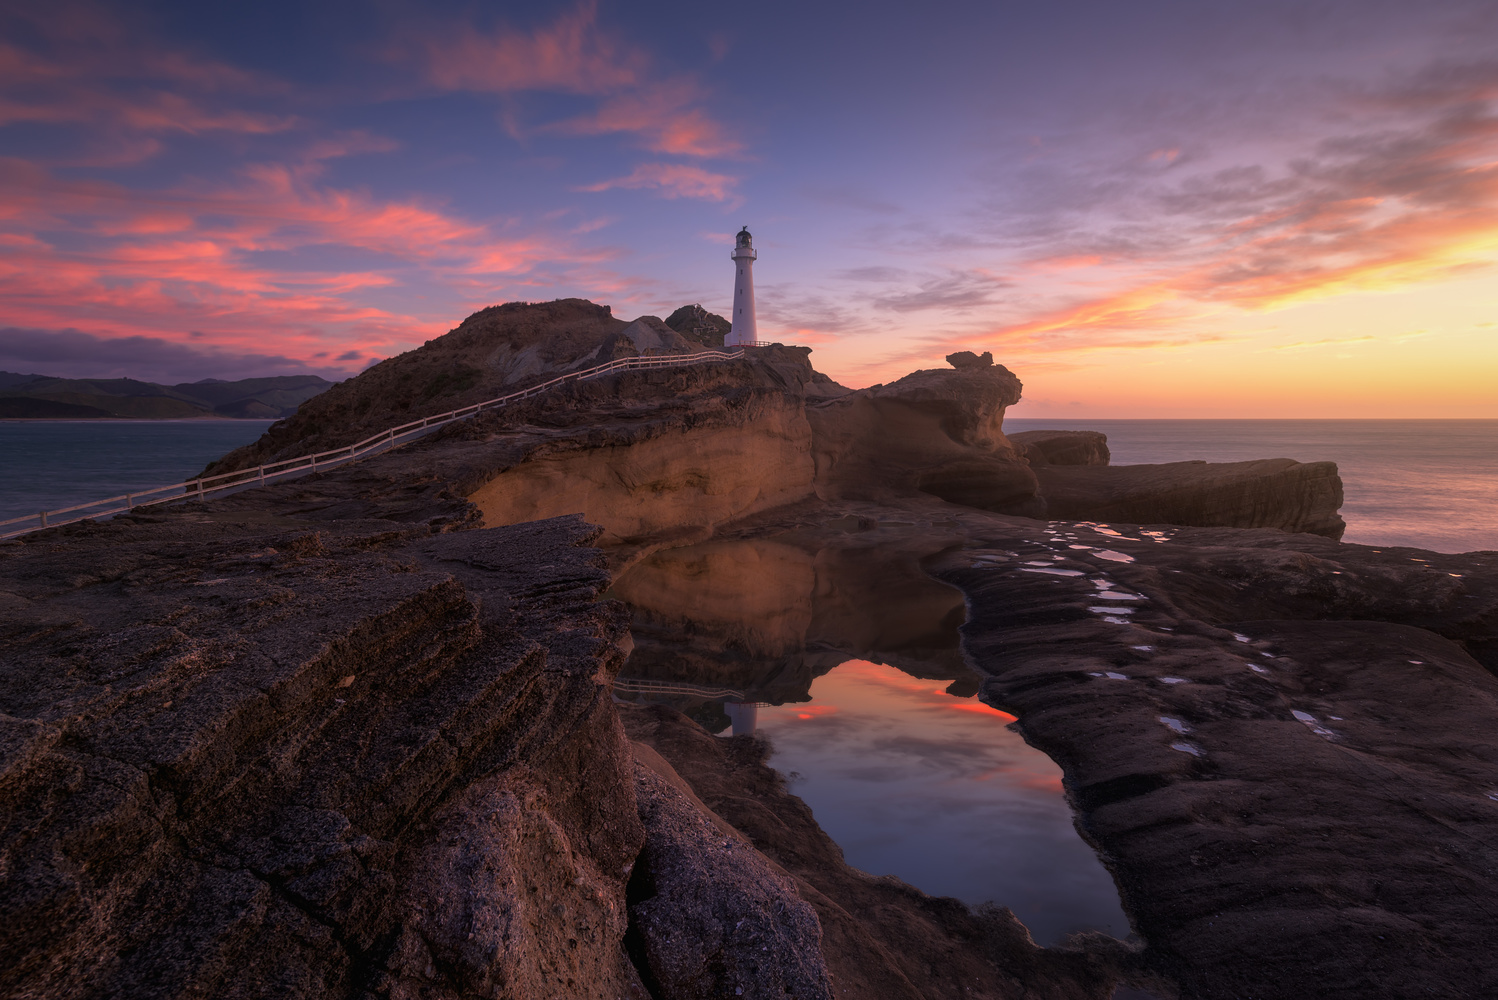 CastlePoint by Hugo Valle